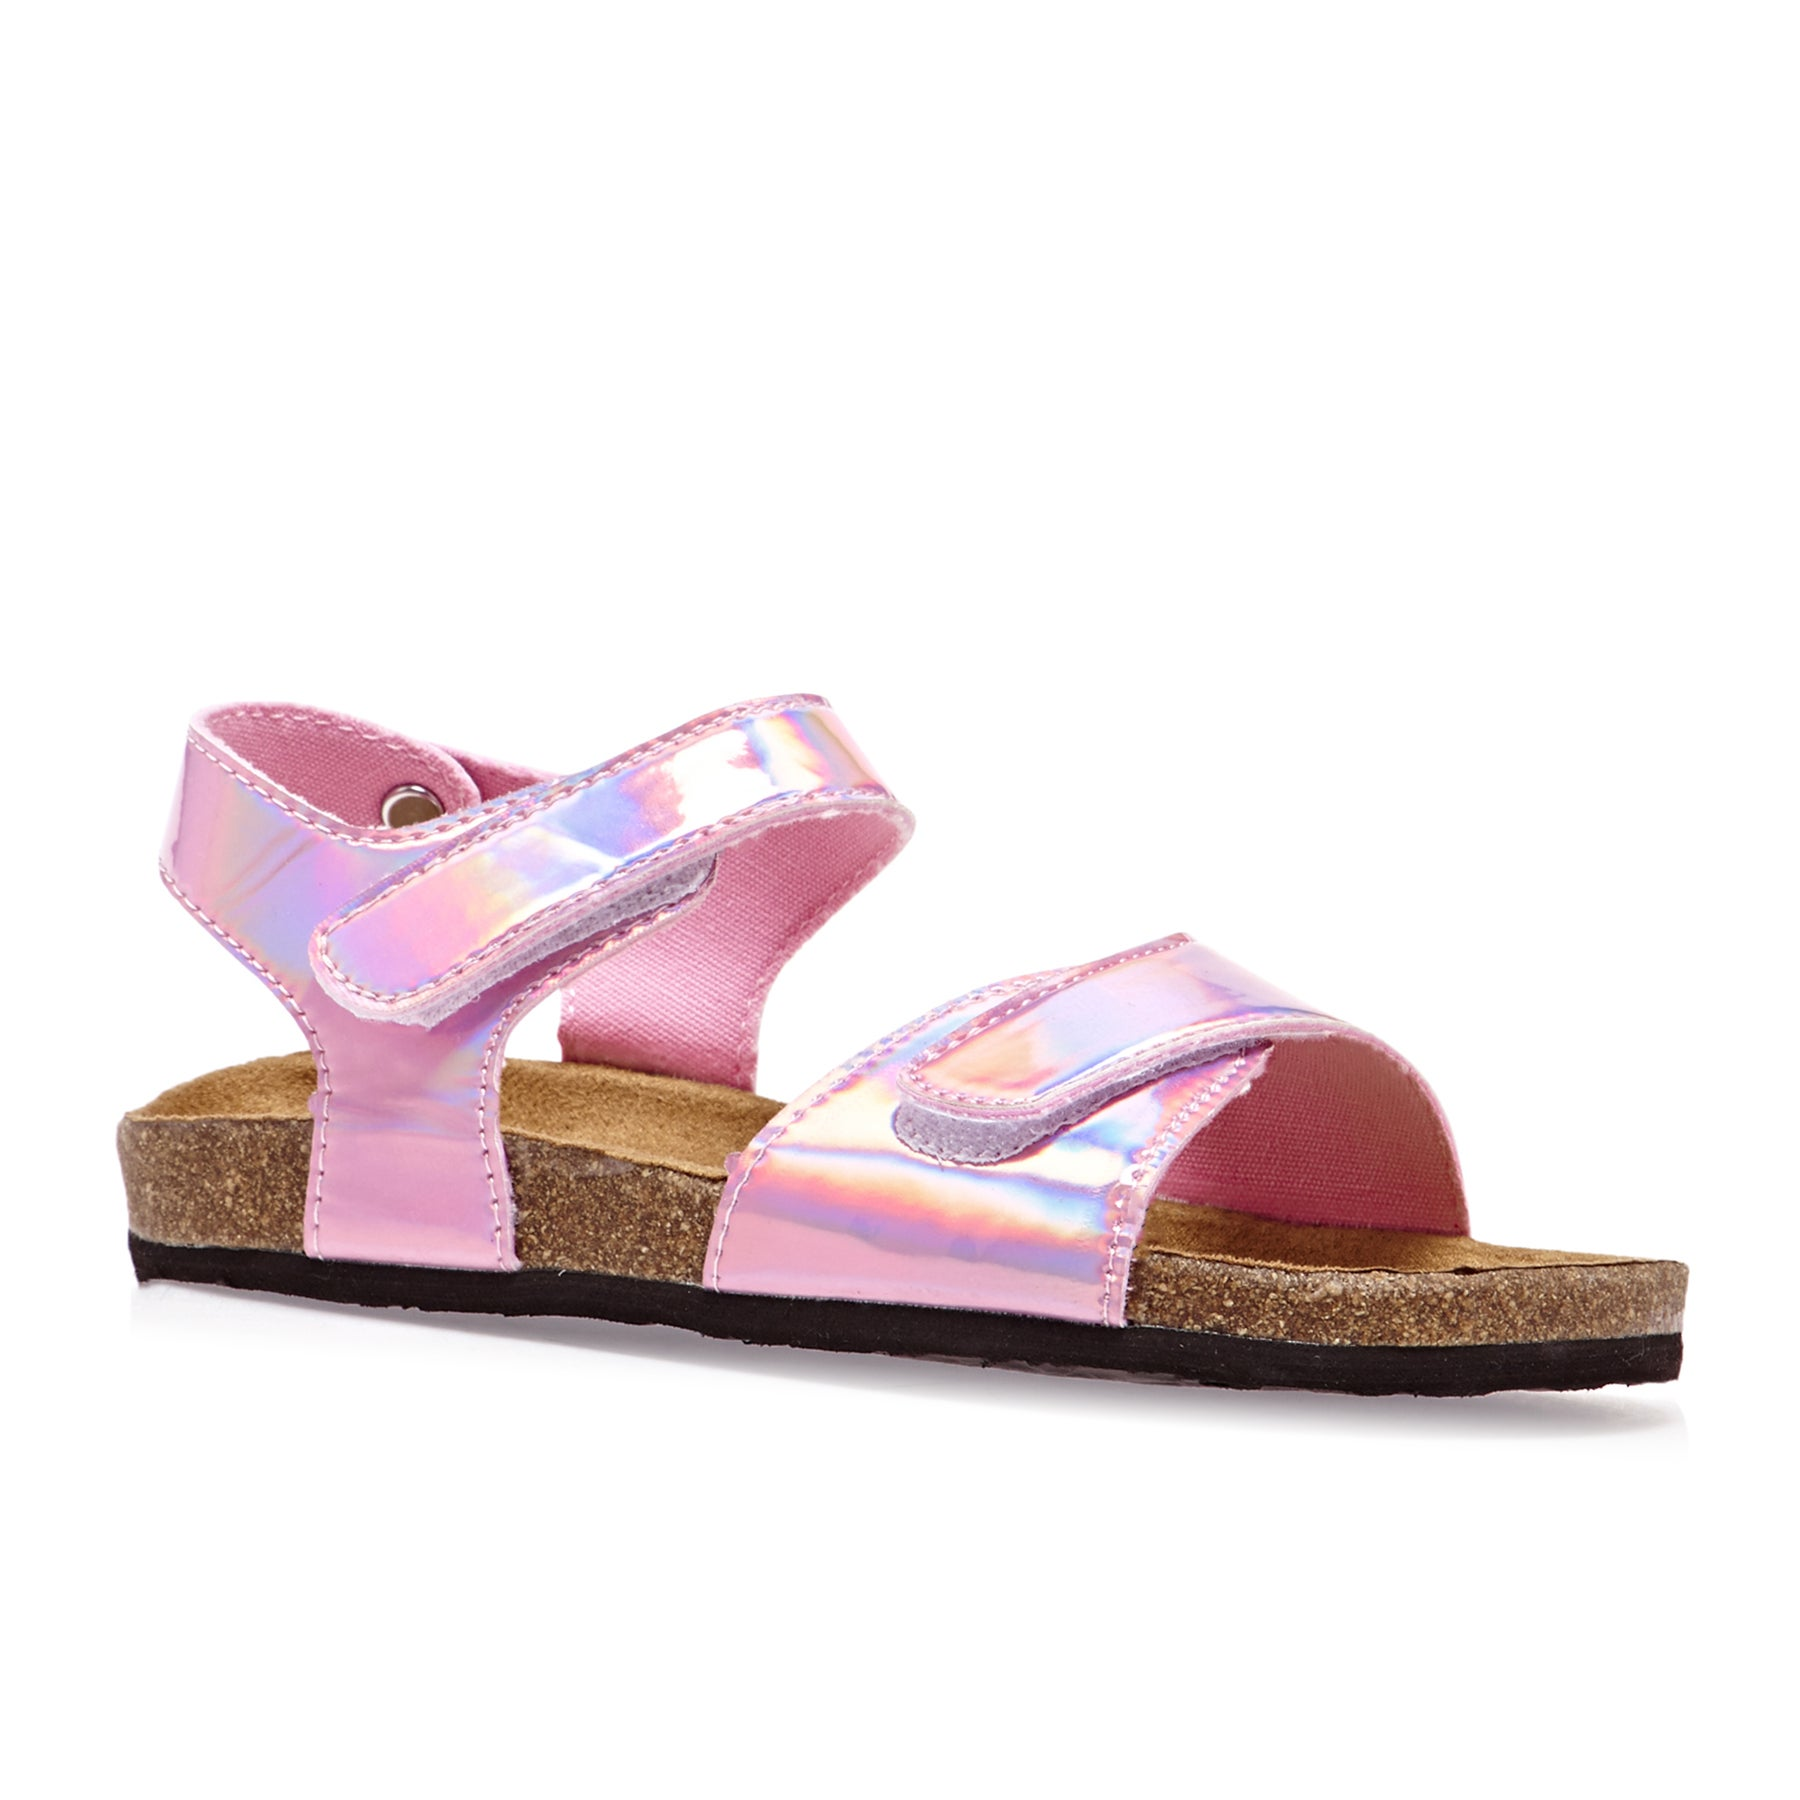 Joules Tippytoes Sandals - Metallic Pink